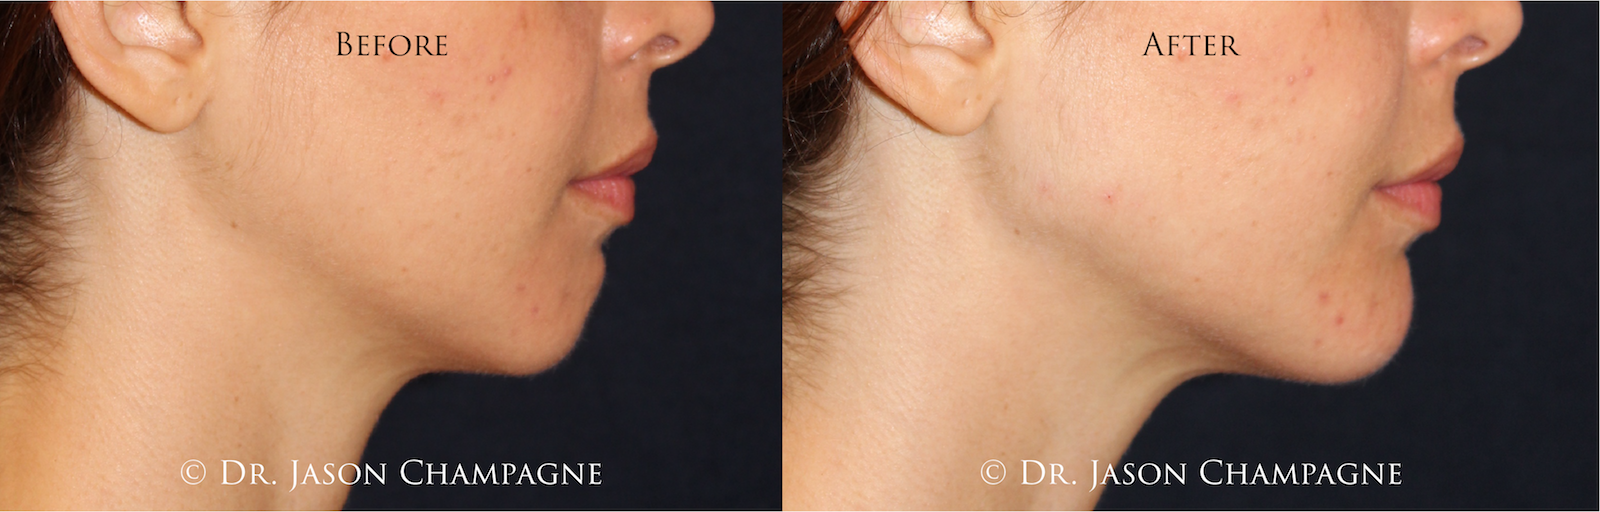 Dr. Jason Champagne Custom Facial Filler Before and After Chin Contouring